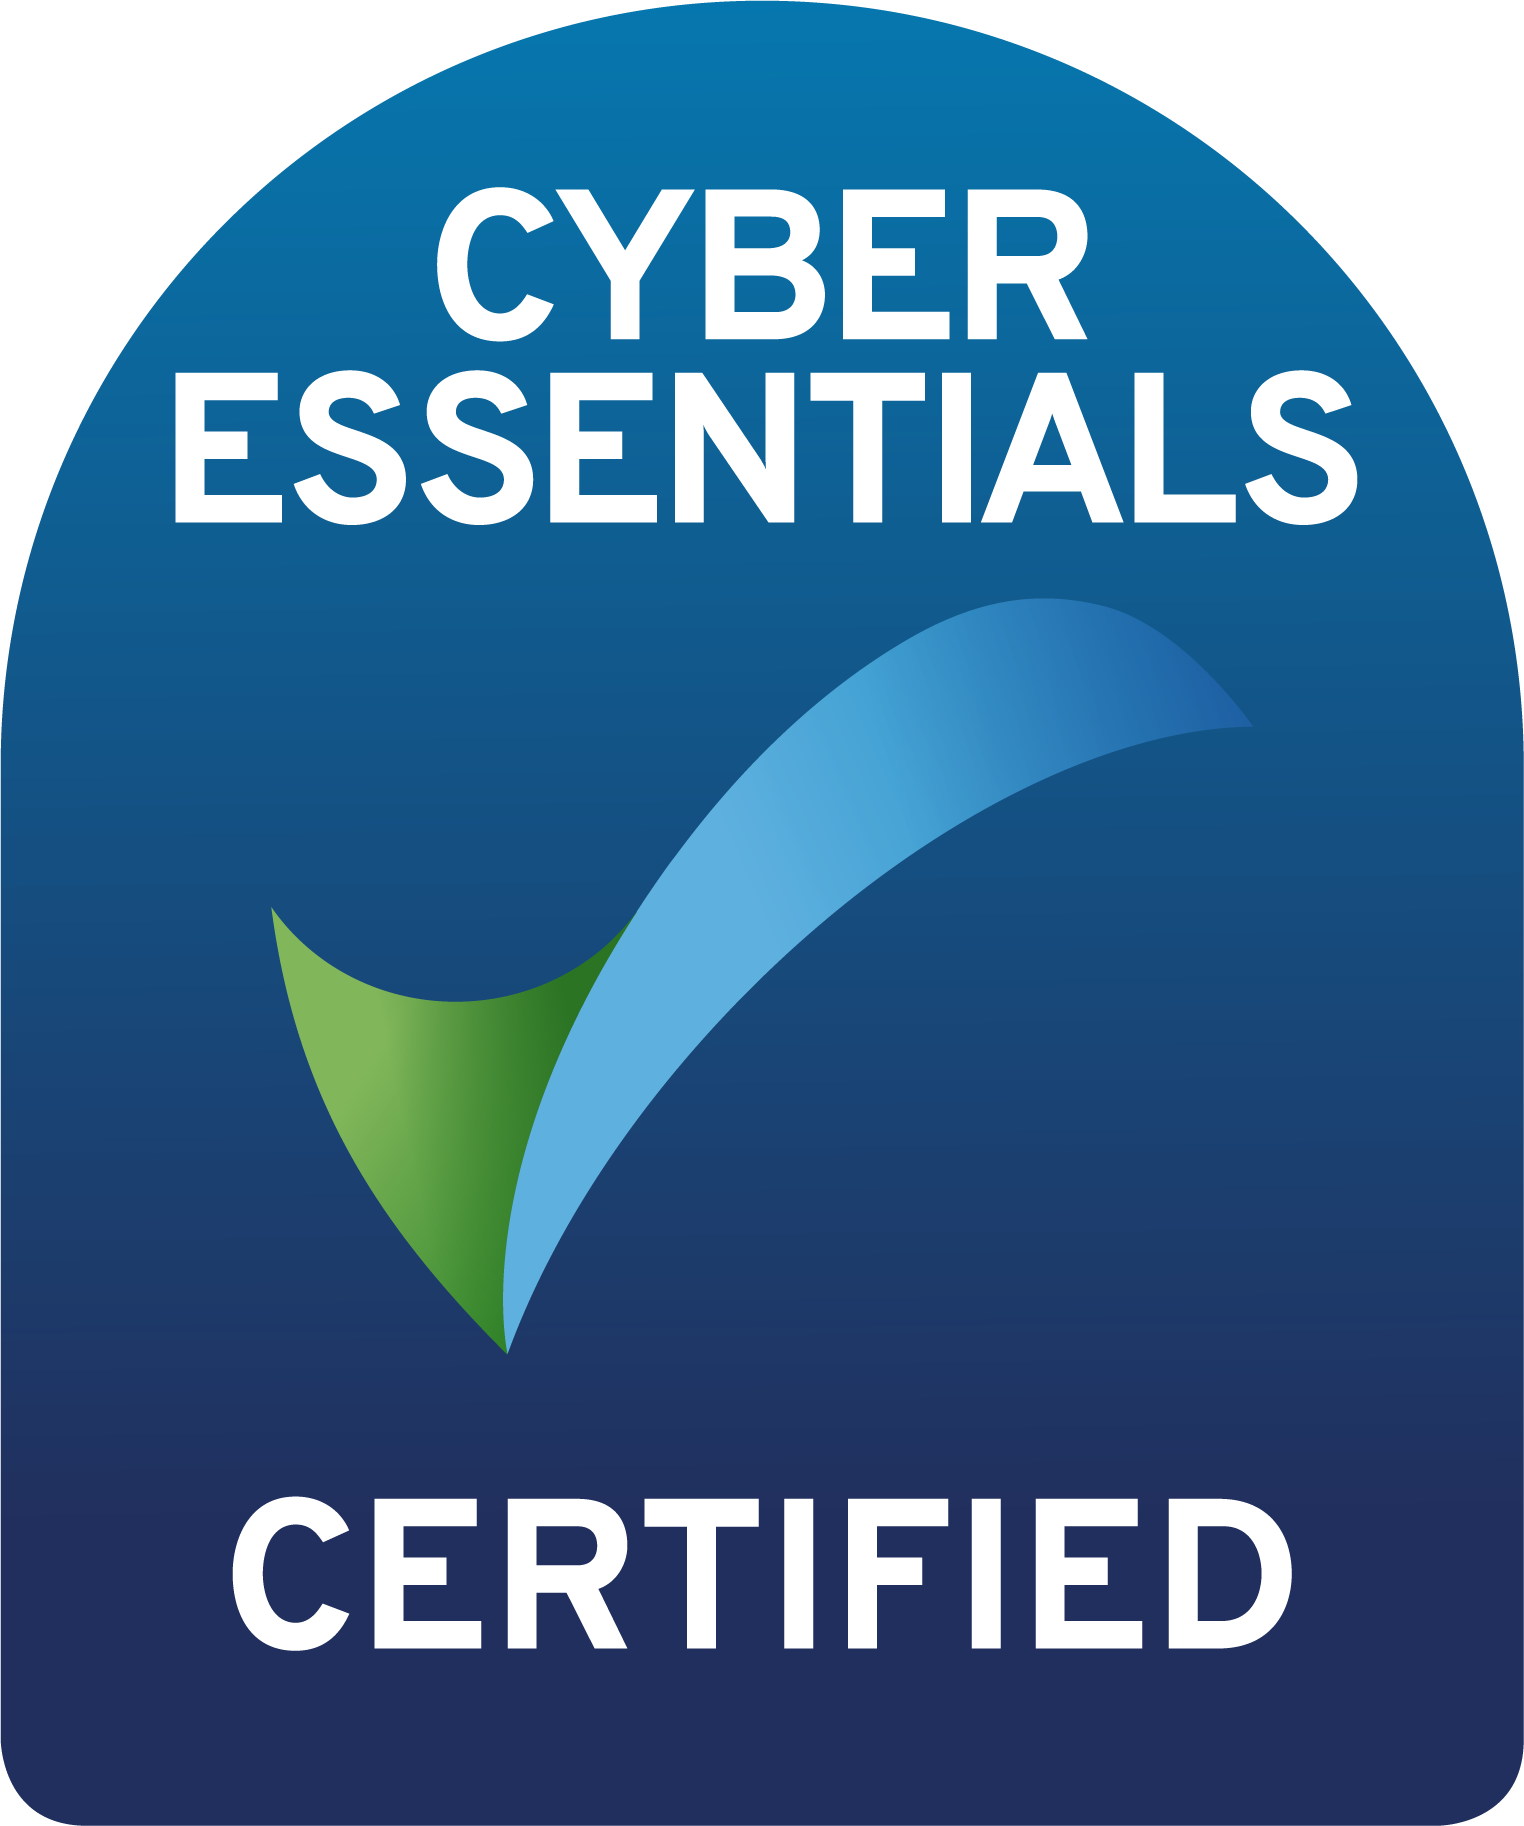 Cyberessentials Certification Mark Colour 6